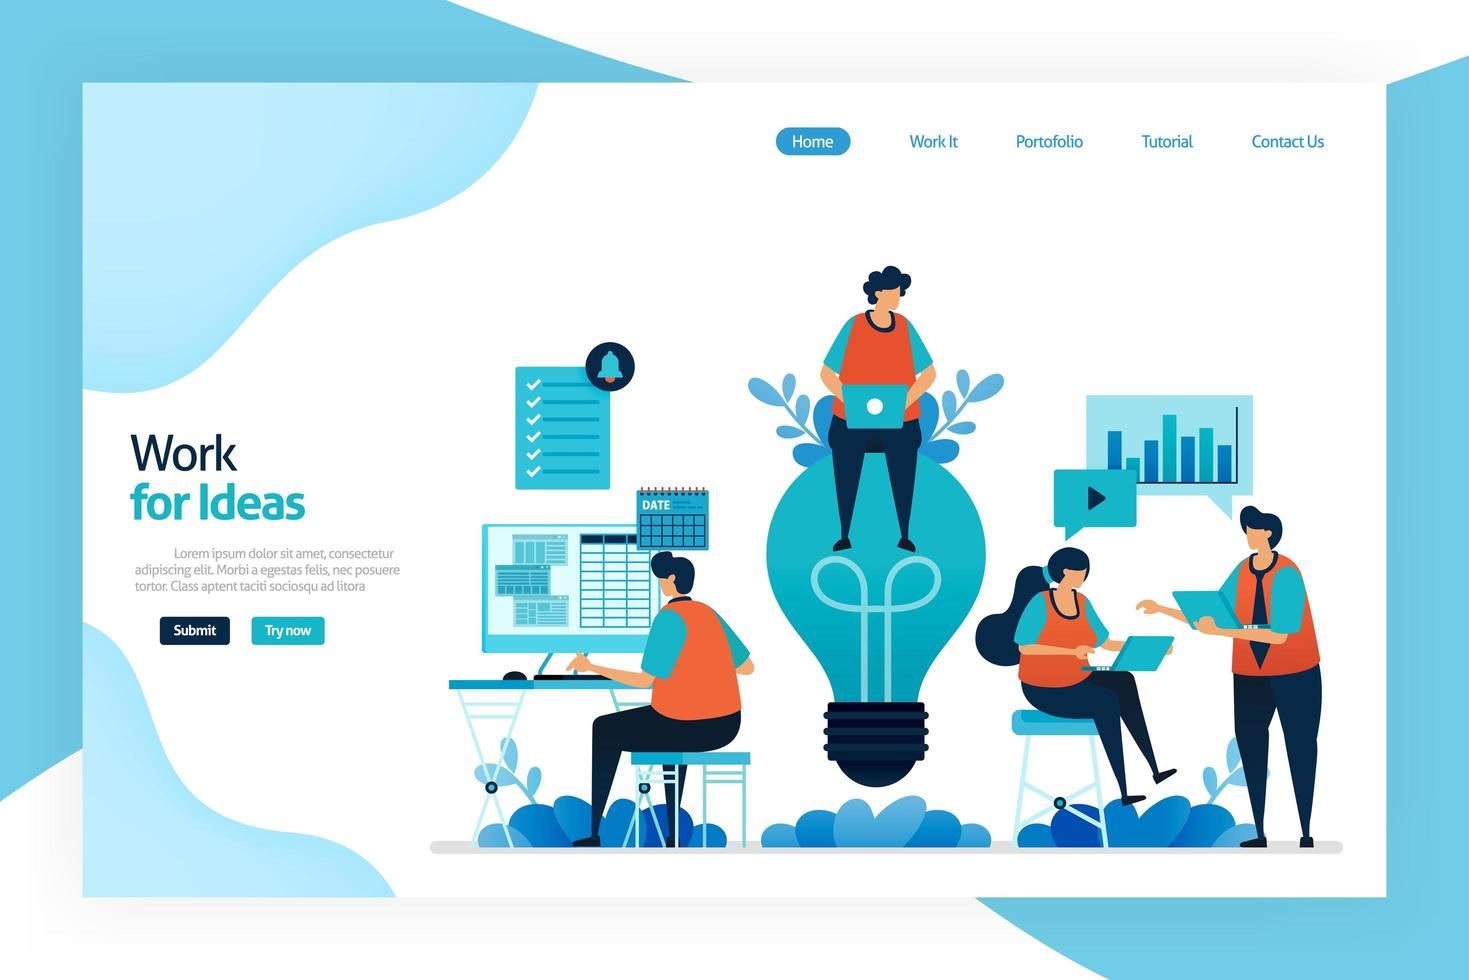 Landing page of work for idea. Employee work and discuss to improve company performance, services, financial gain. Big idea for problem solving and managing risk. Designed for website, mobile apps vector